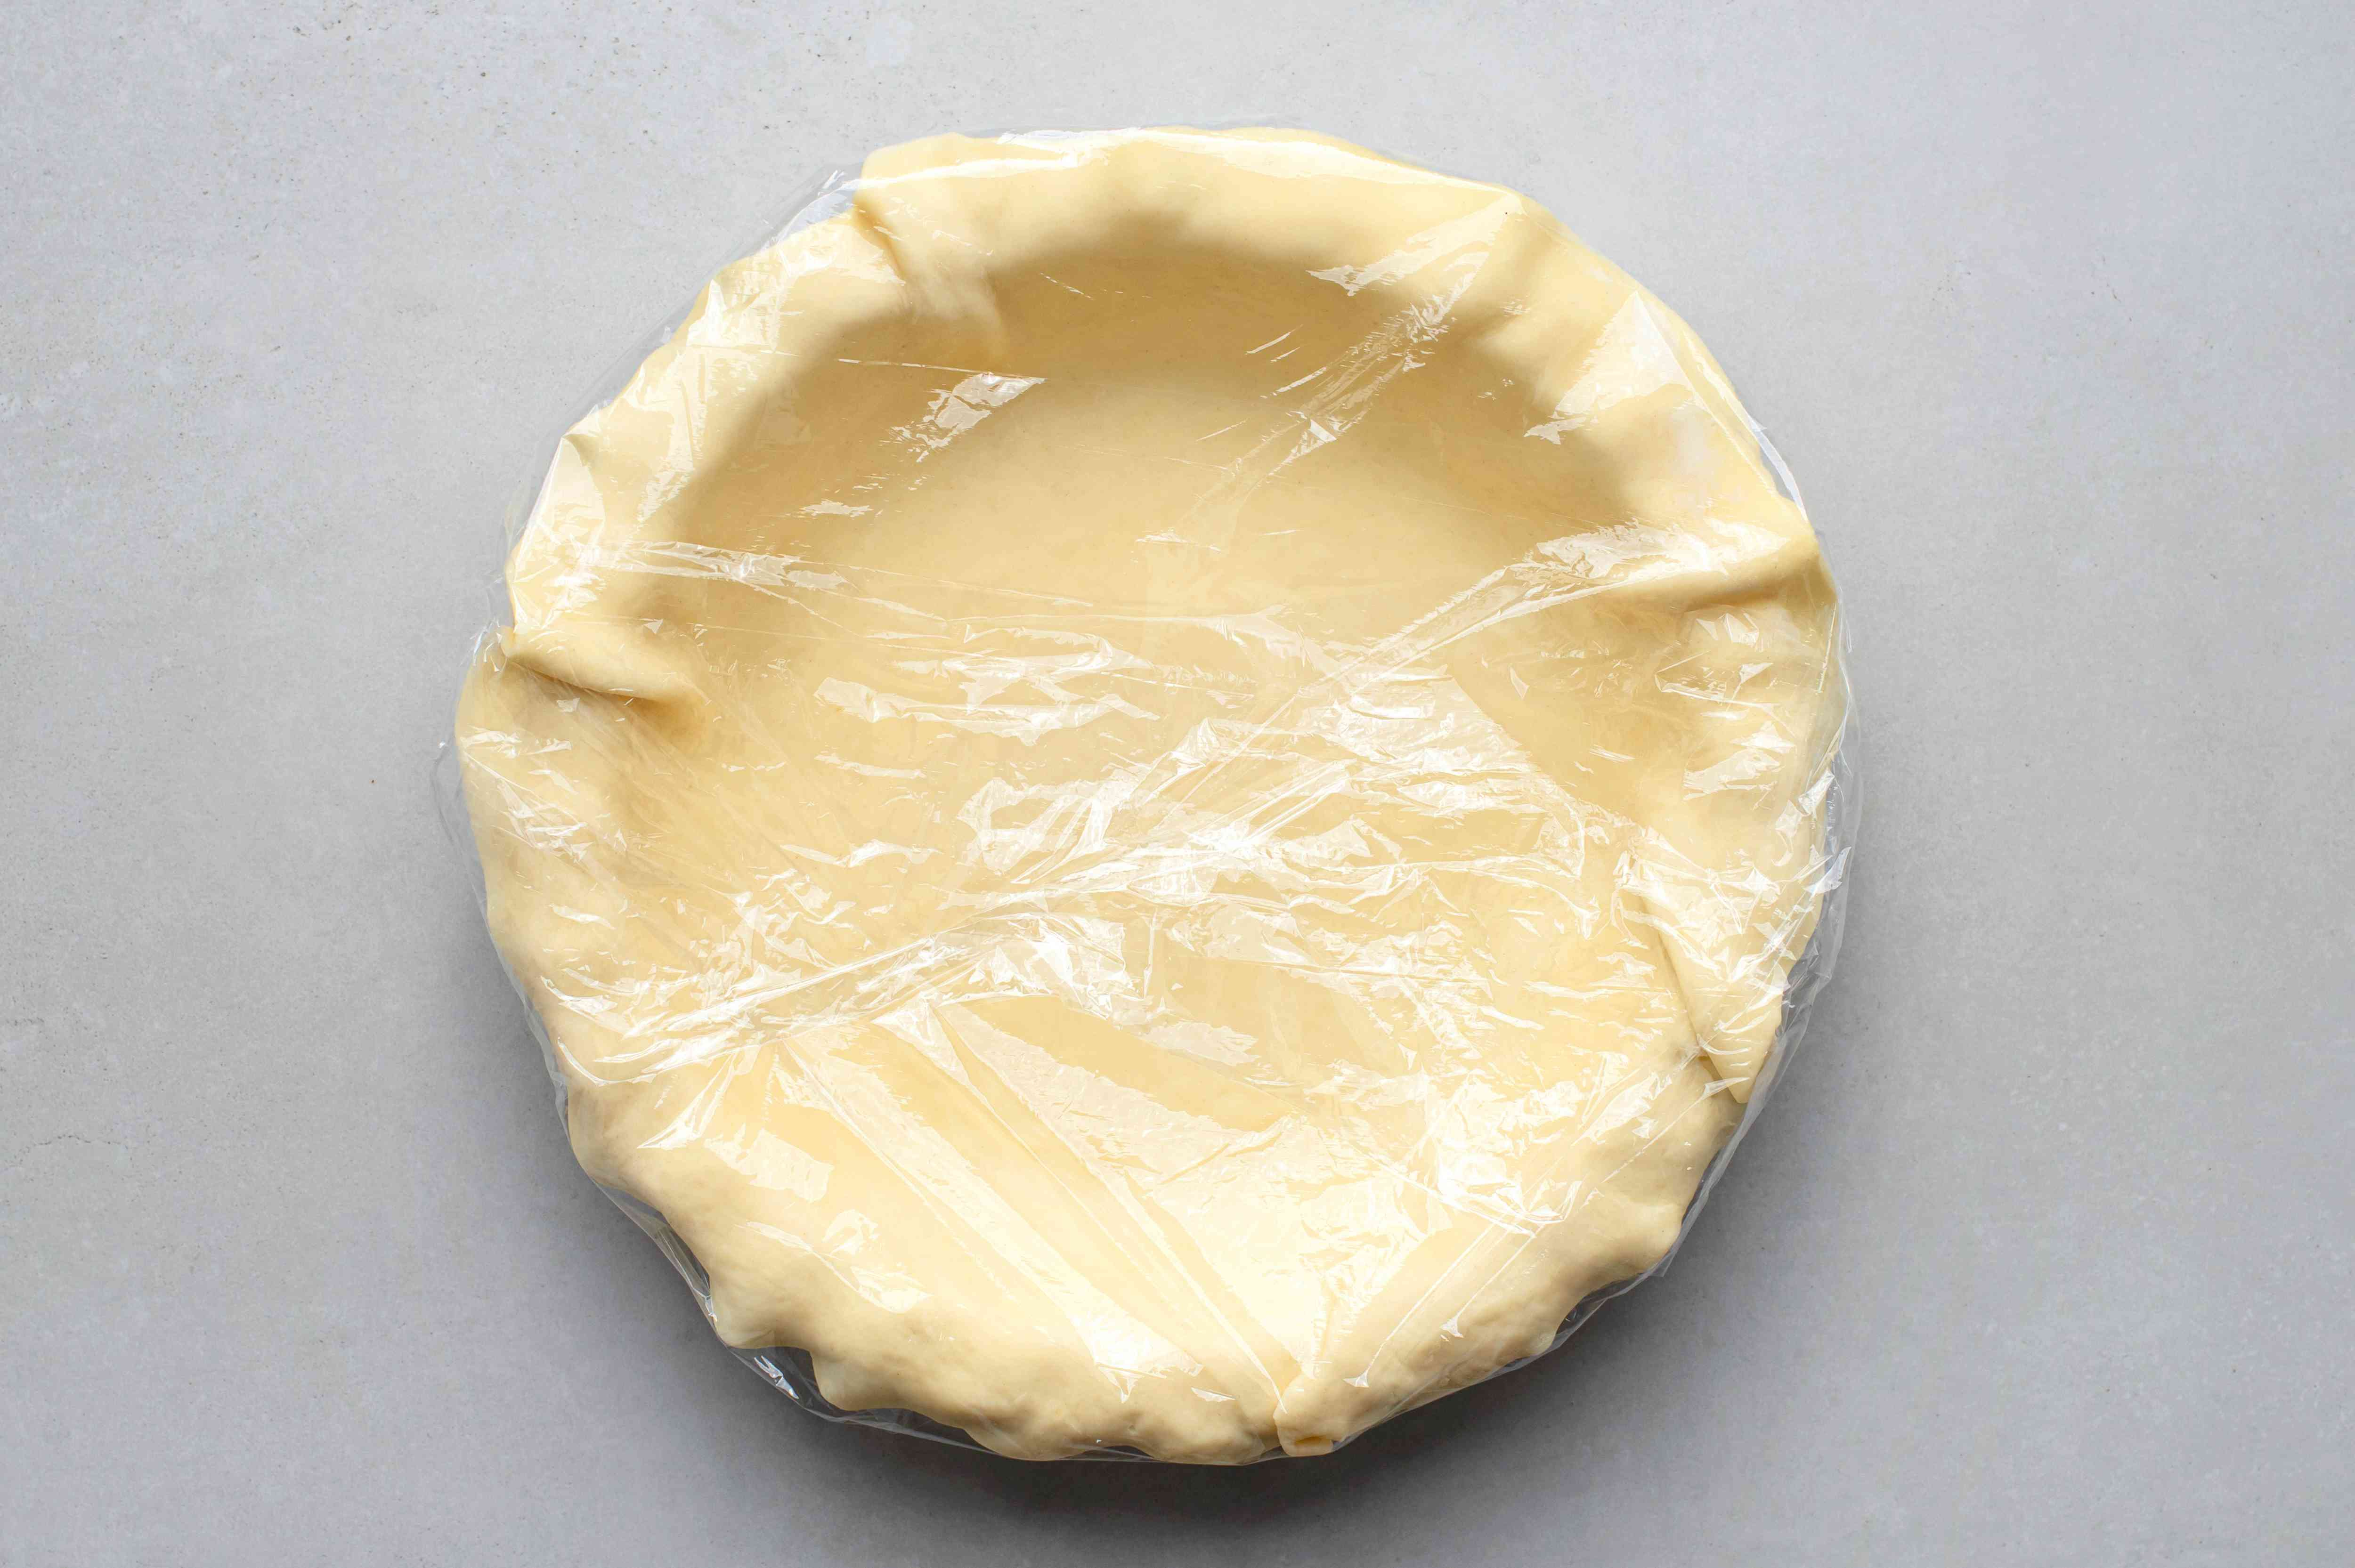 Line the pie pan with one crust, cover with plastic wrap